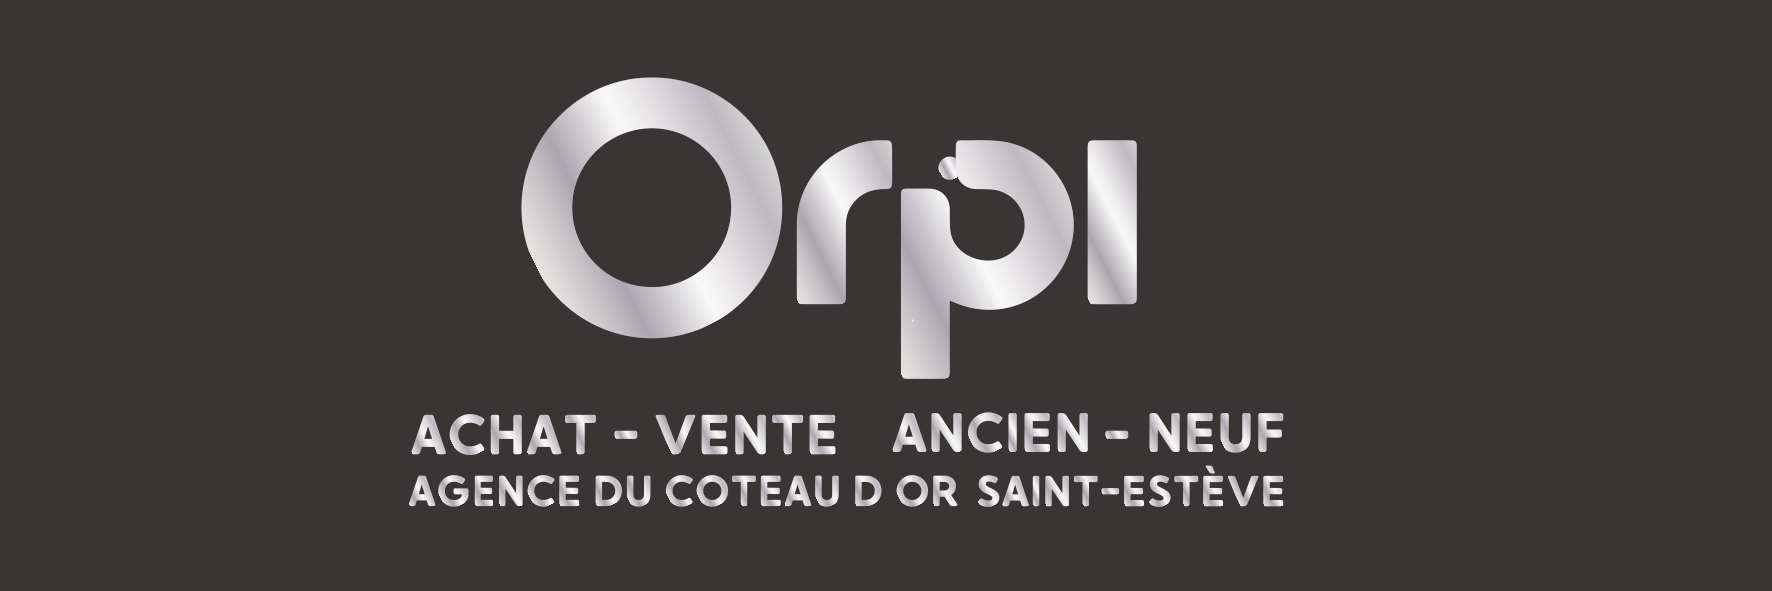 http://usepmm.fr/wp-content/uploads/2021/03/Orpi-gris_page-0001.jpg